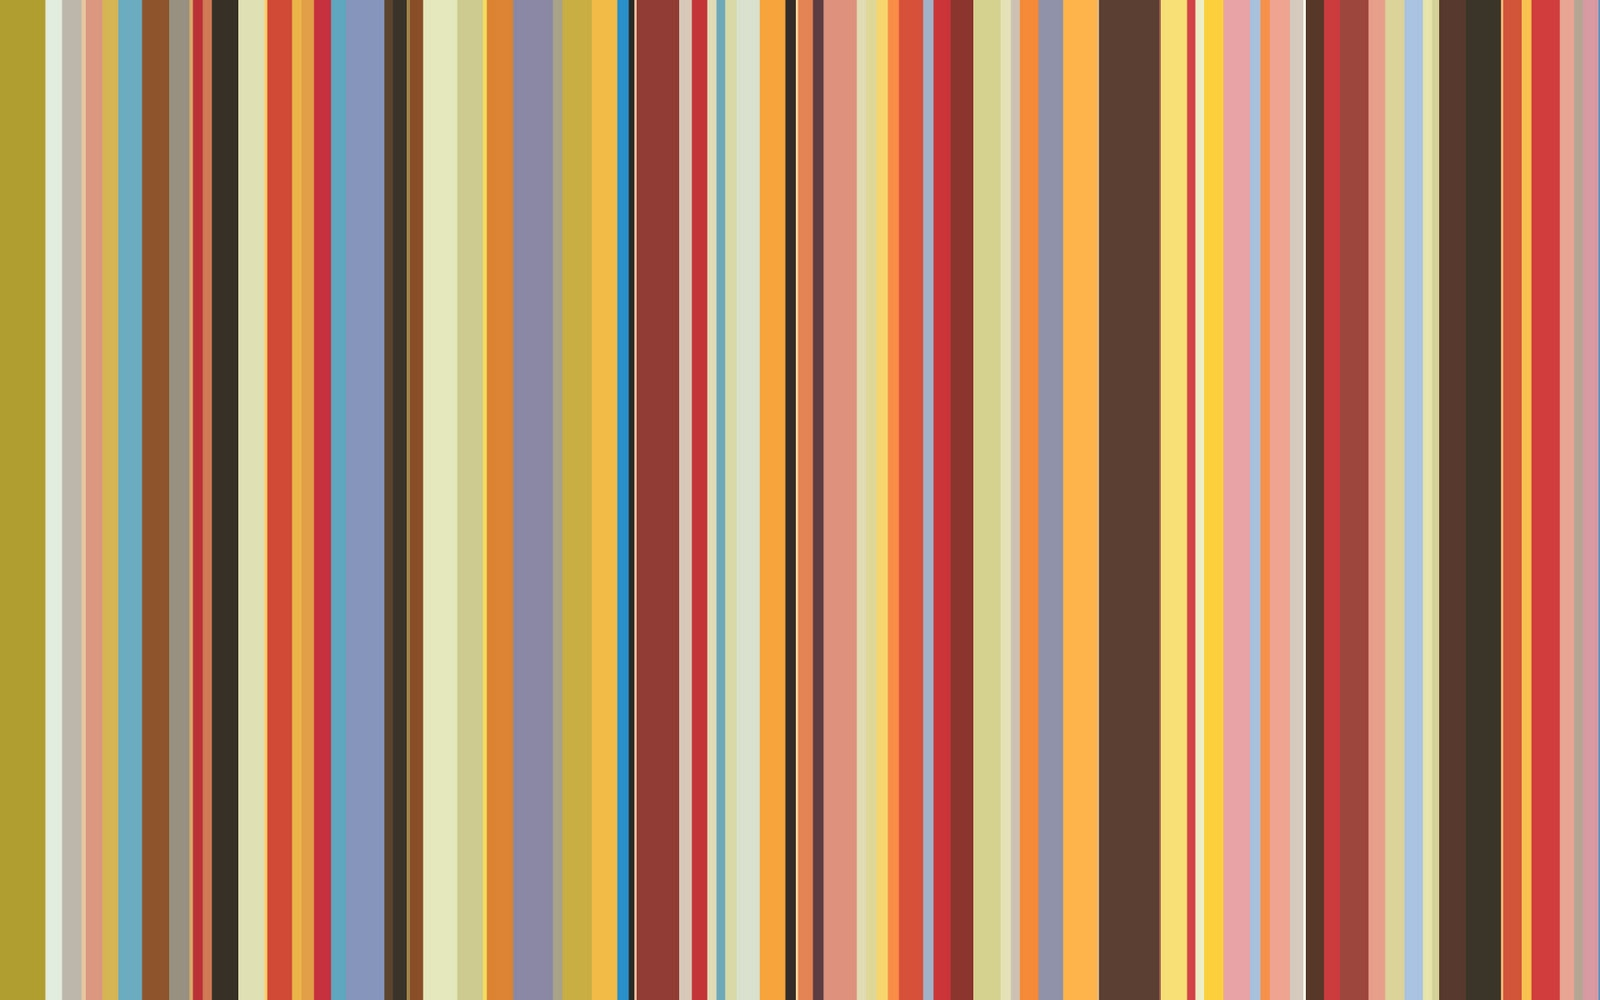 Go Back Images For Gucci Stripes Wallpaper 1600x1000